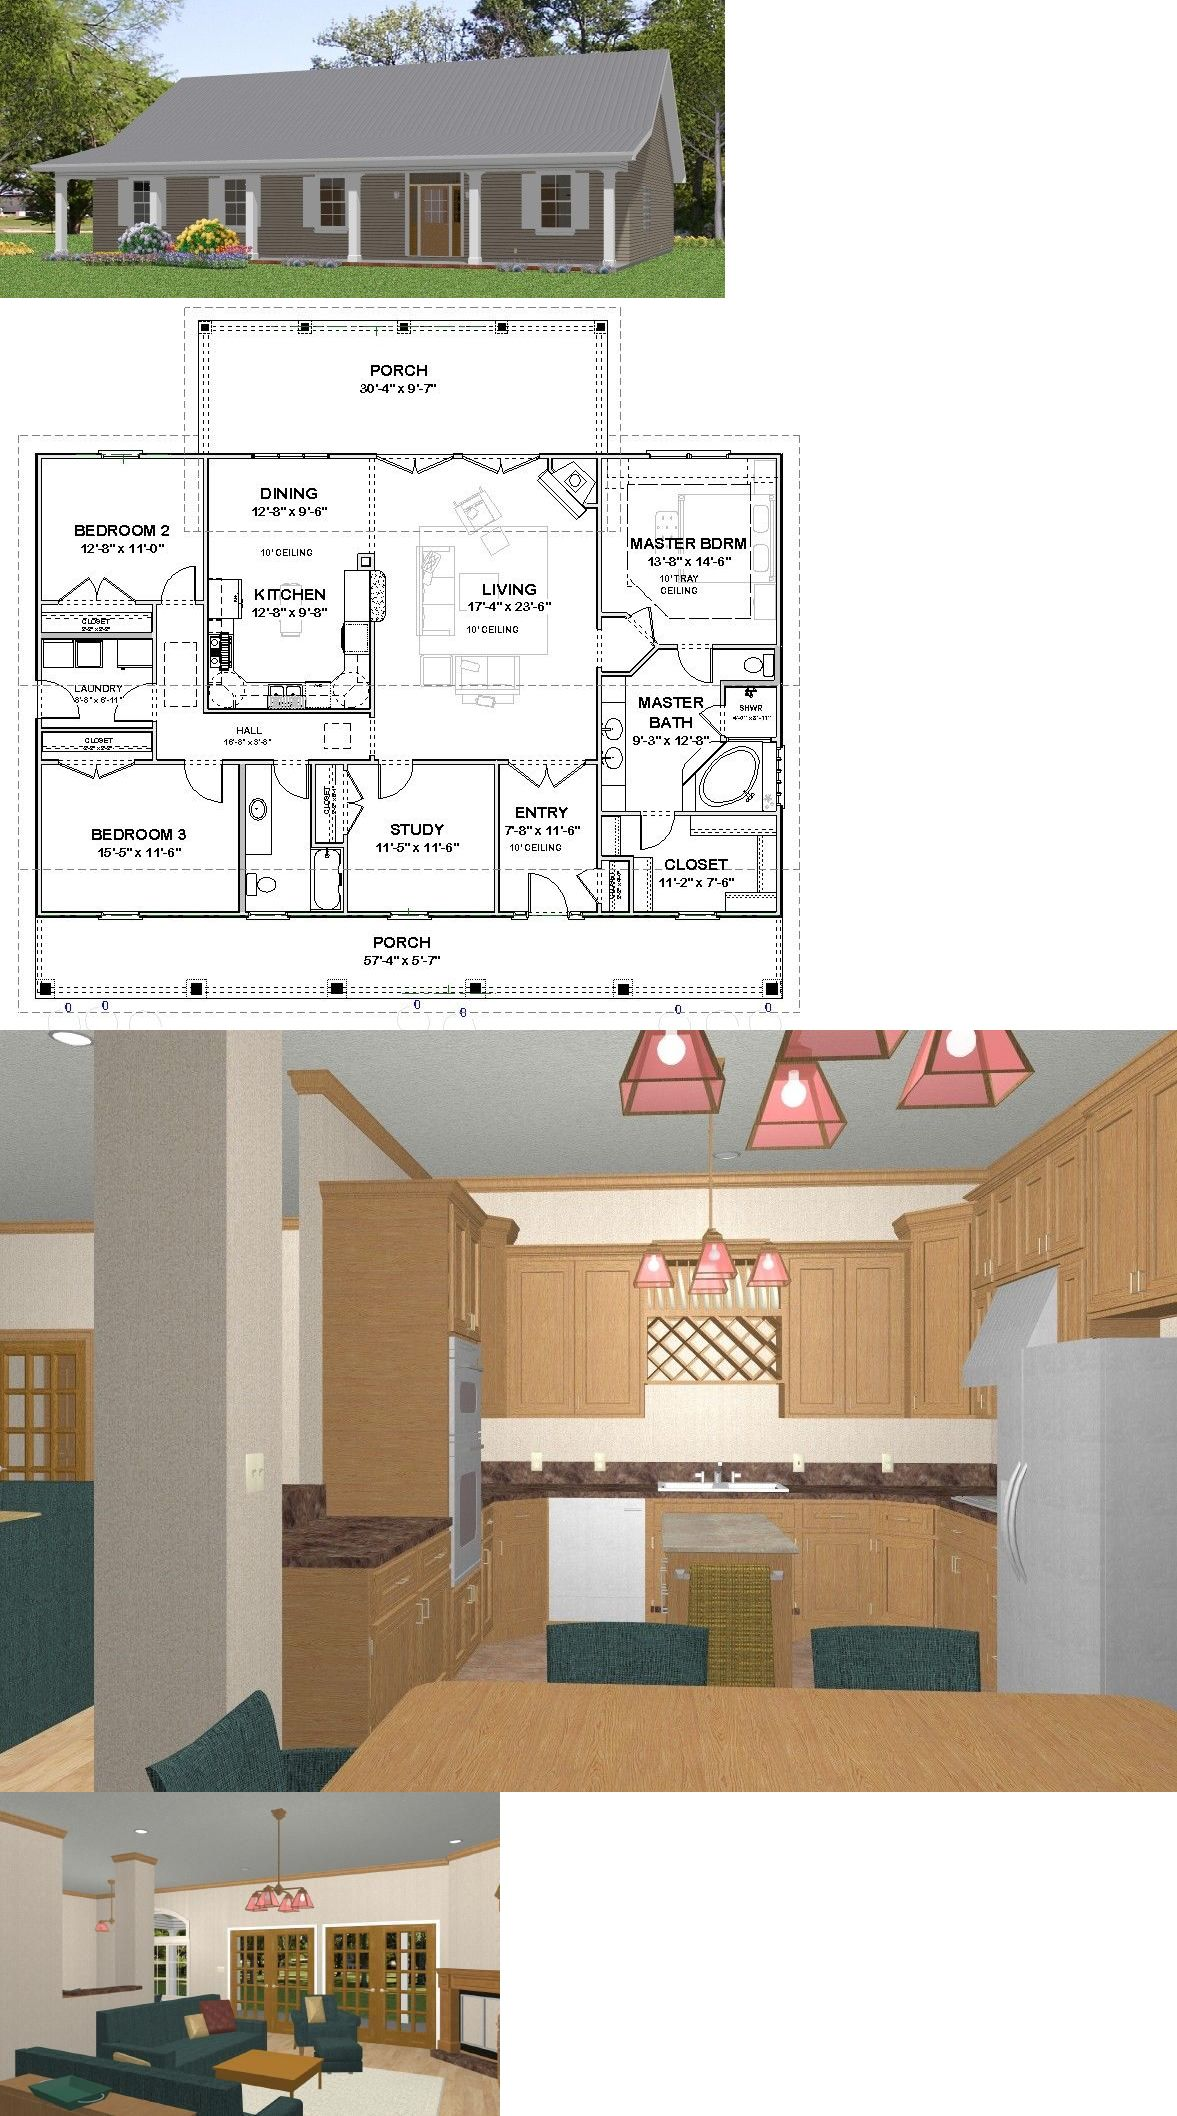 Building plans and blueprints affordable house home bedroom sf pdf   buy it now only on ebay also rh pinterest